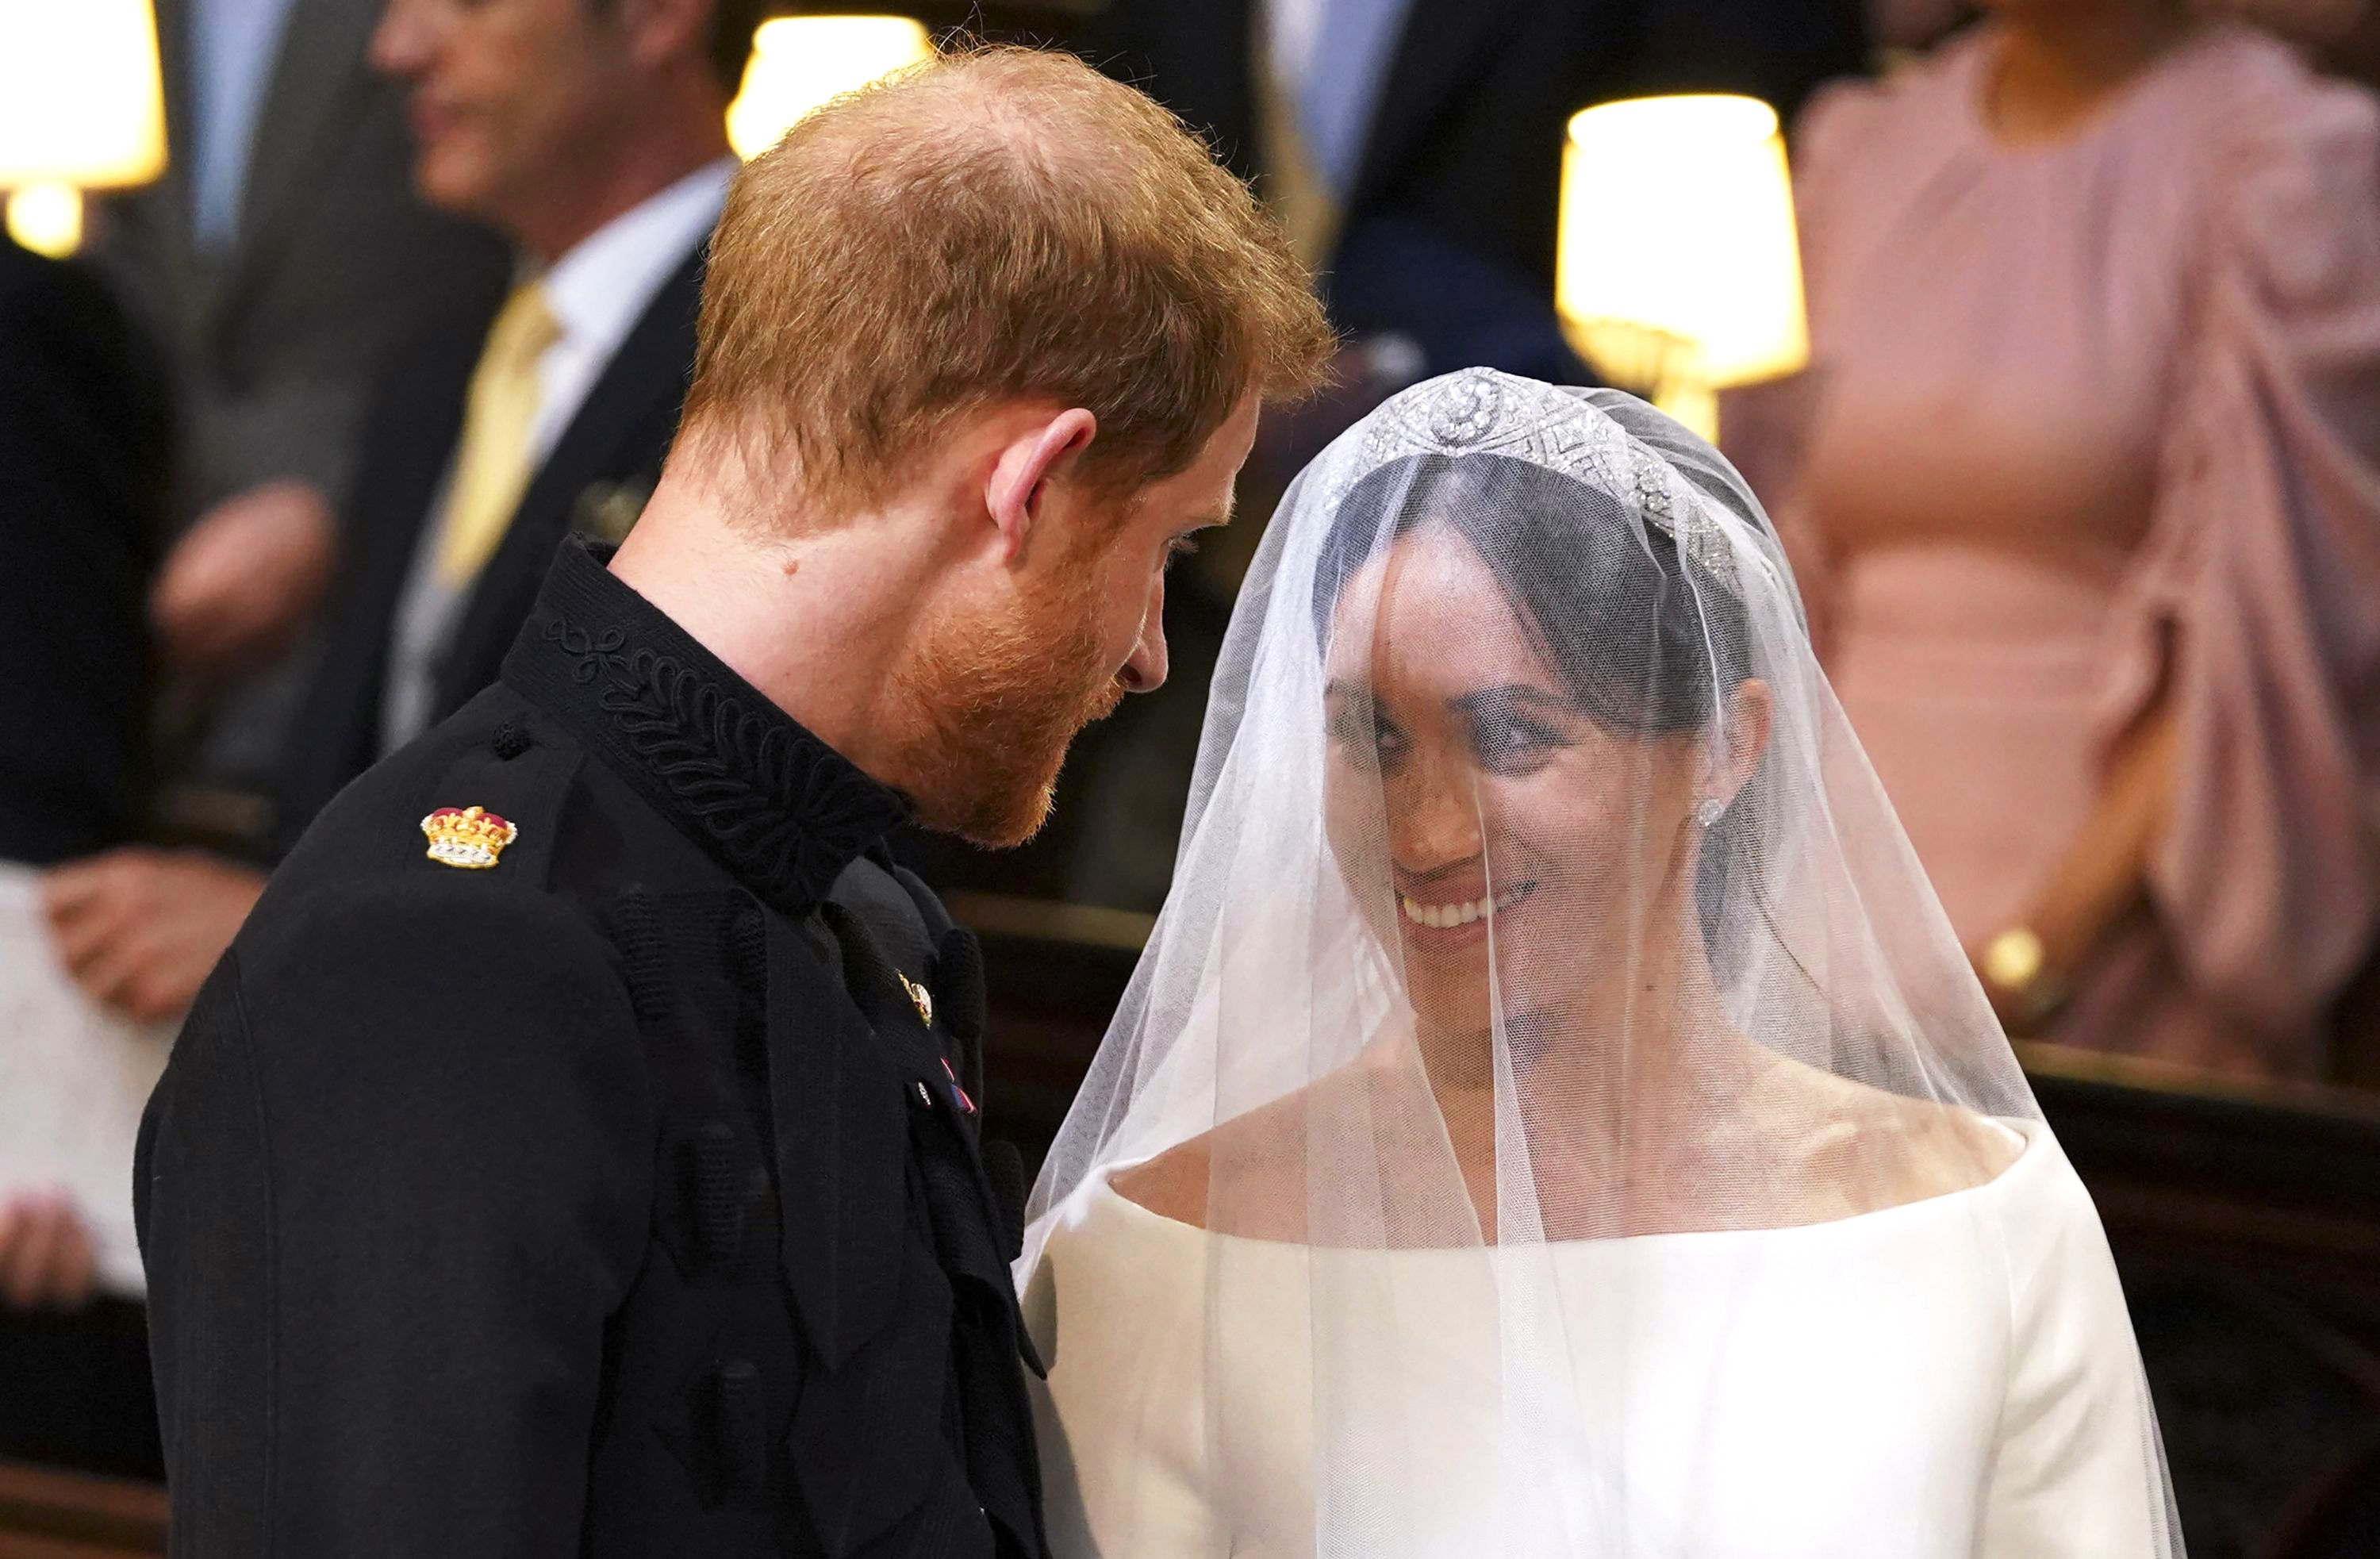 Meghan Markle Helped Prince Harry Put on Her Wedding Ring Meghan